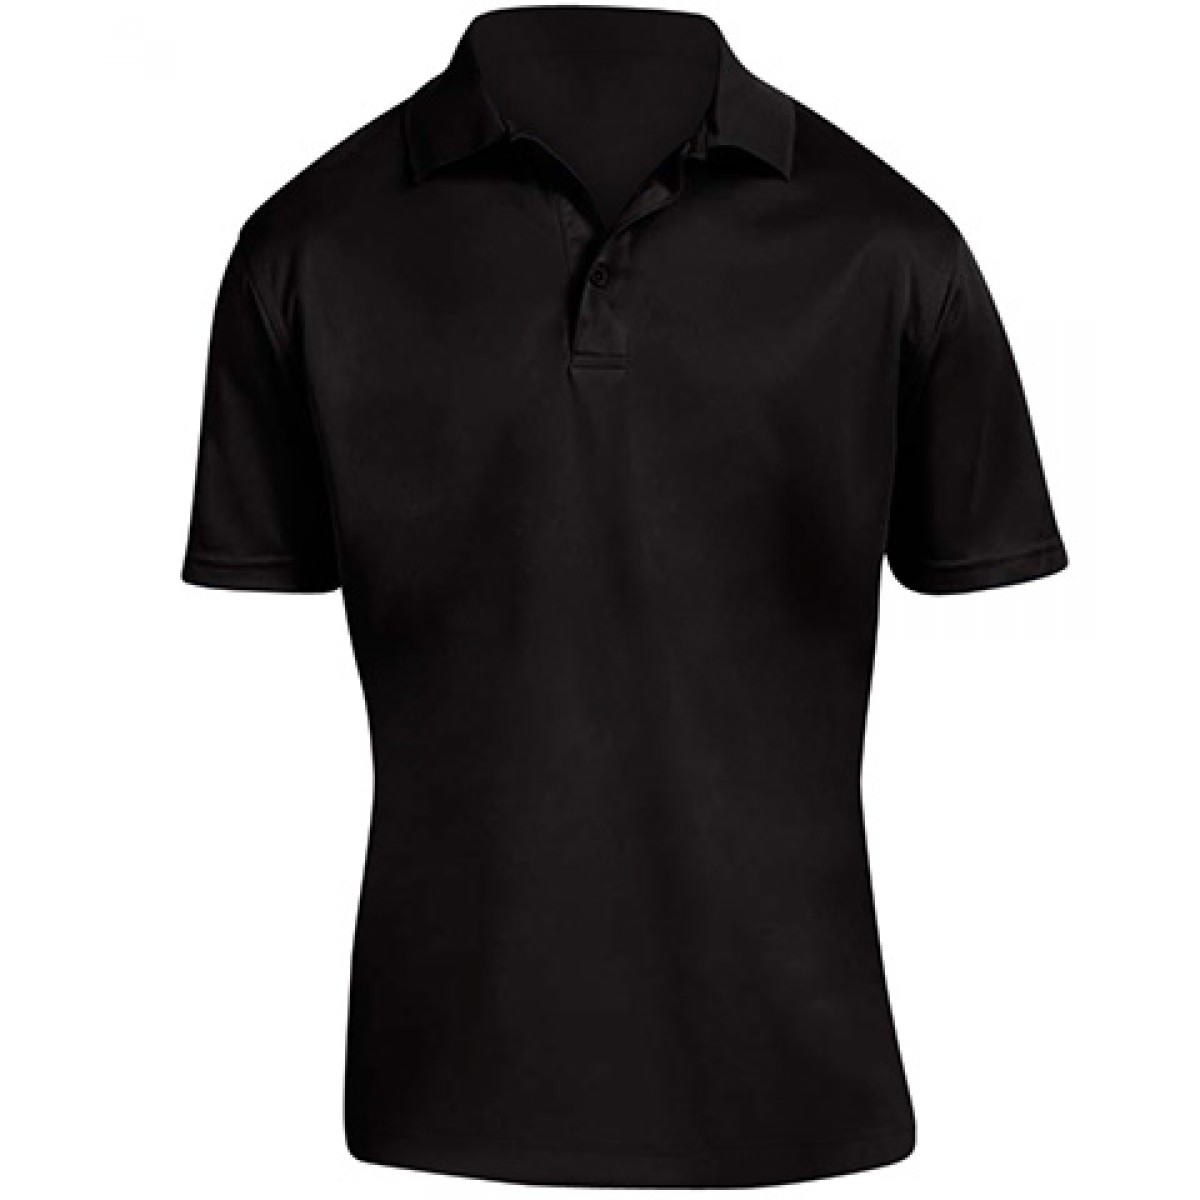 Men's 4 oz. Polytech Polo-Black-2XL